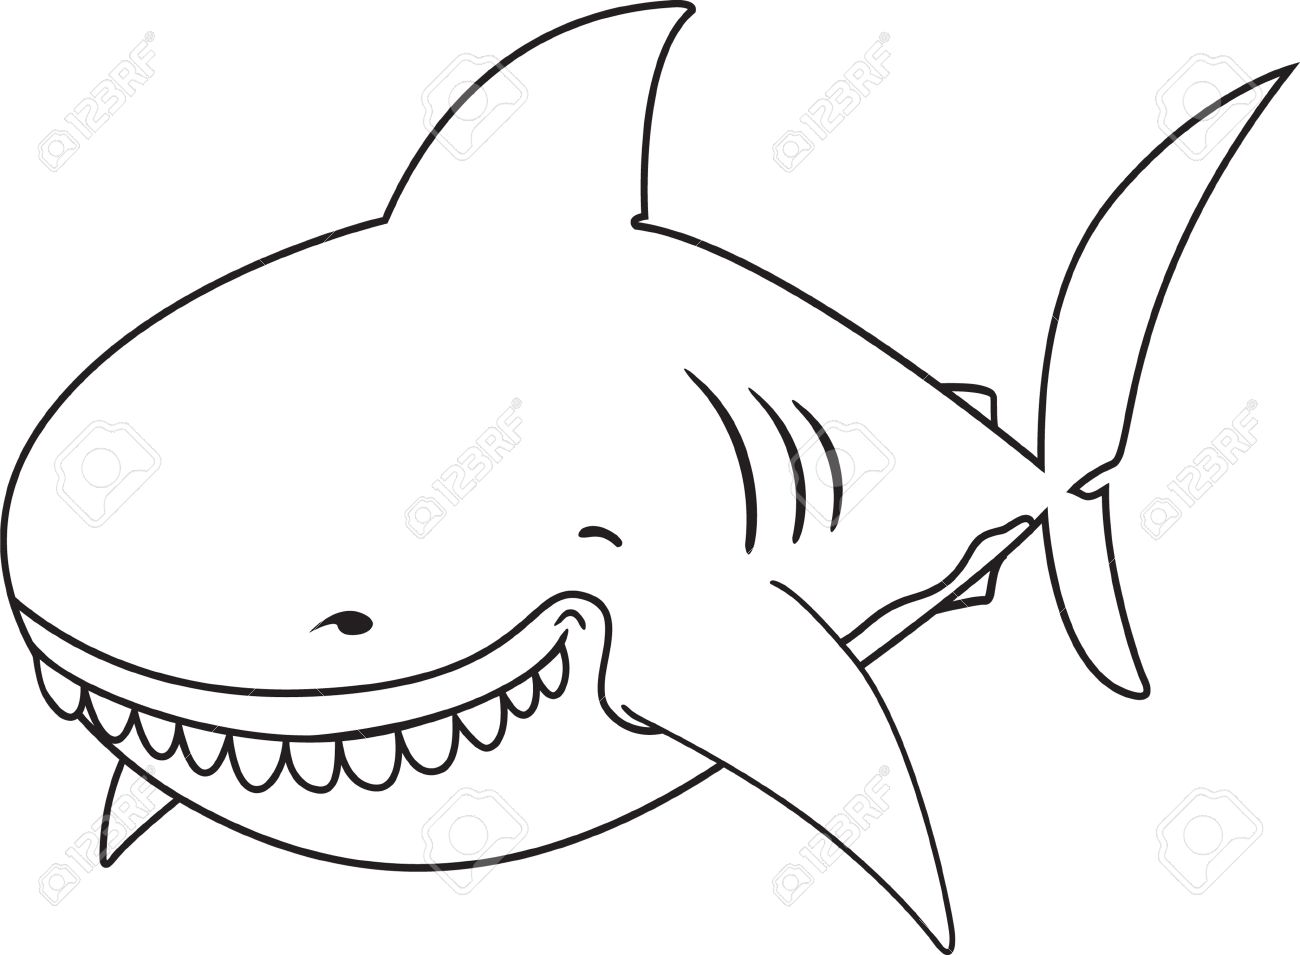 cute funny looking great white shark coloring book stock vector 39328559 - Shark Coloring Book